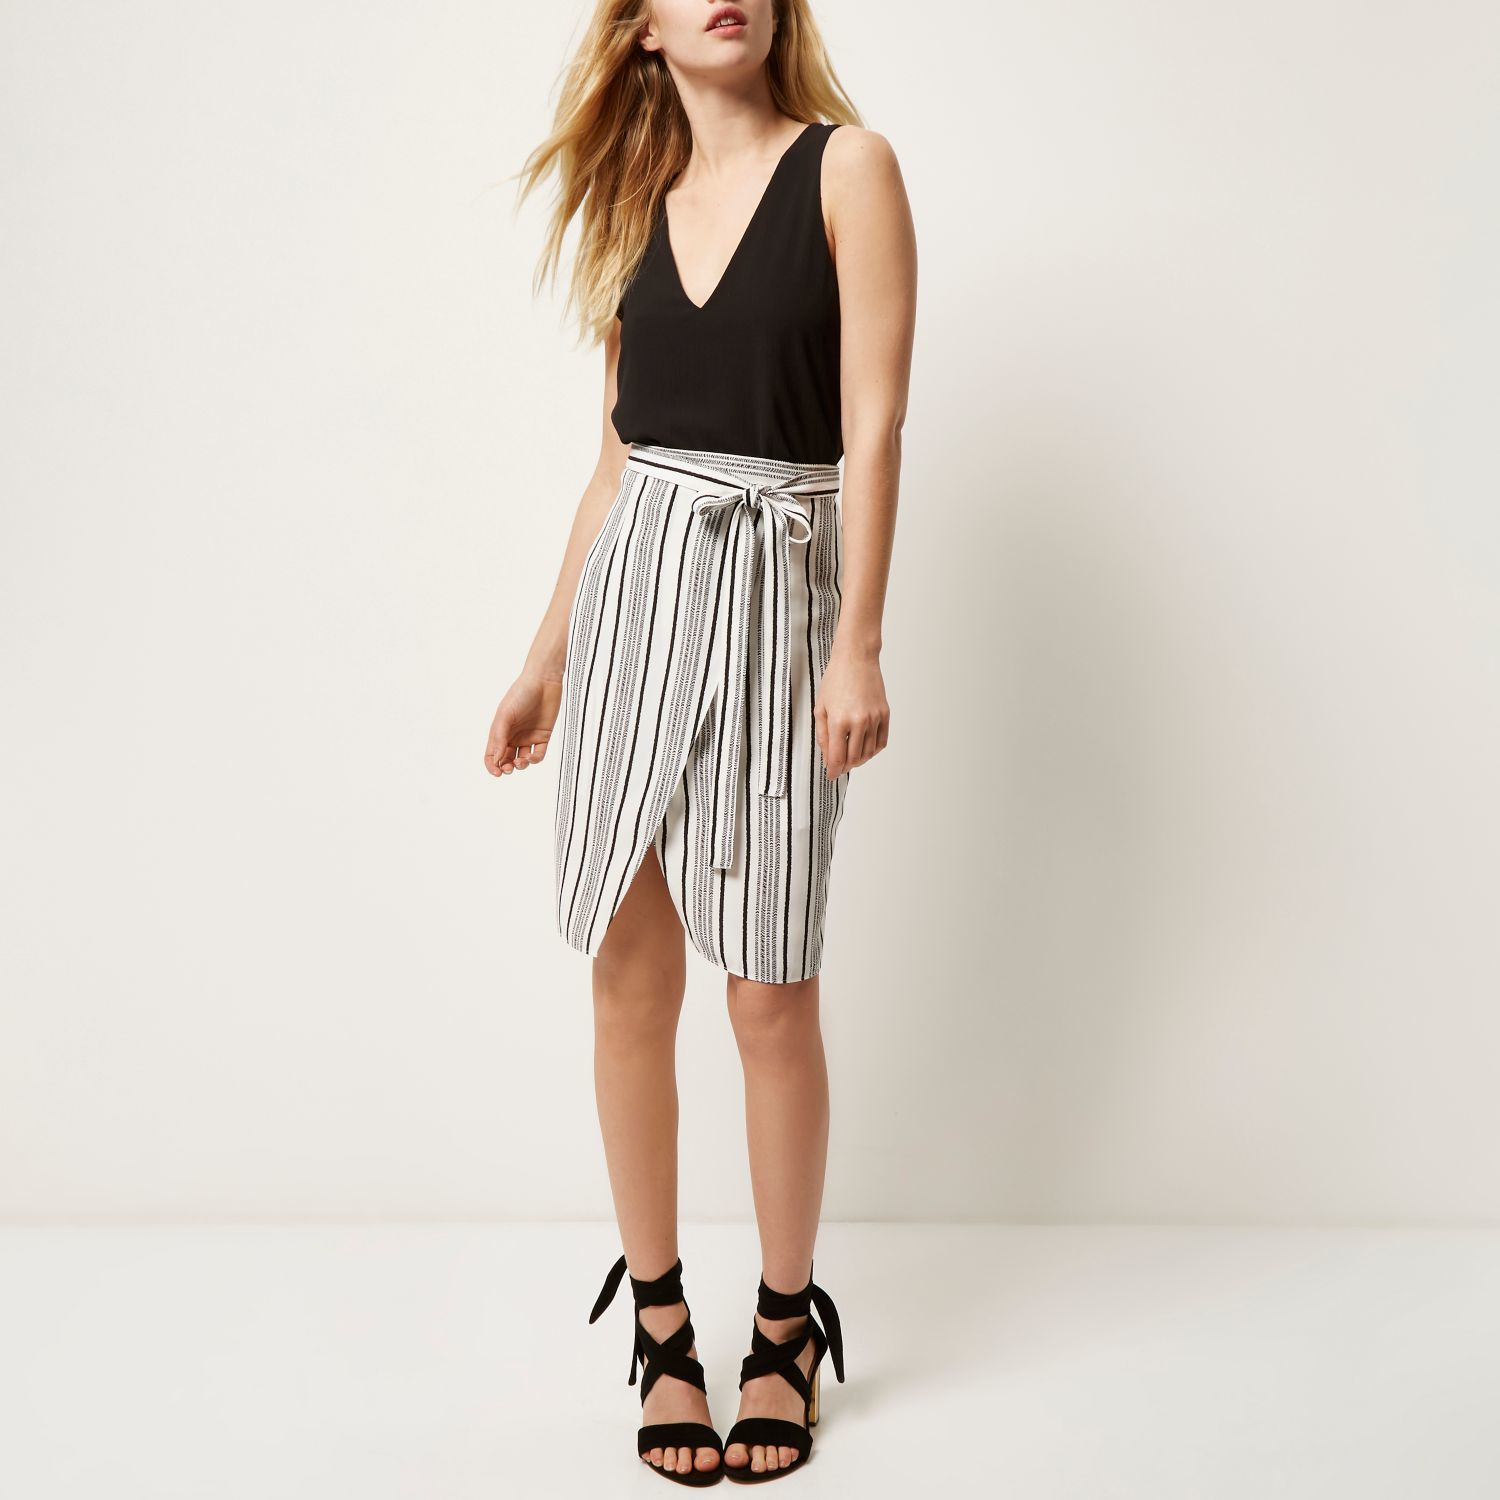 River island Black Stripe Tie Wrap Midi Skirt in Black | Lyst